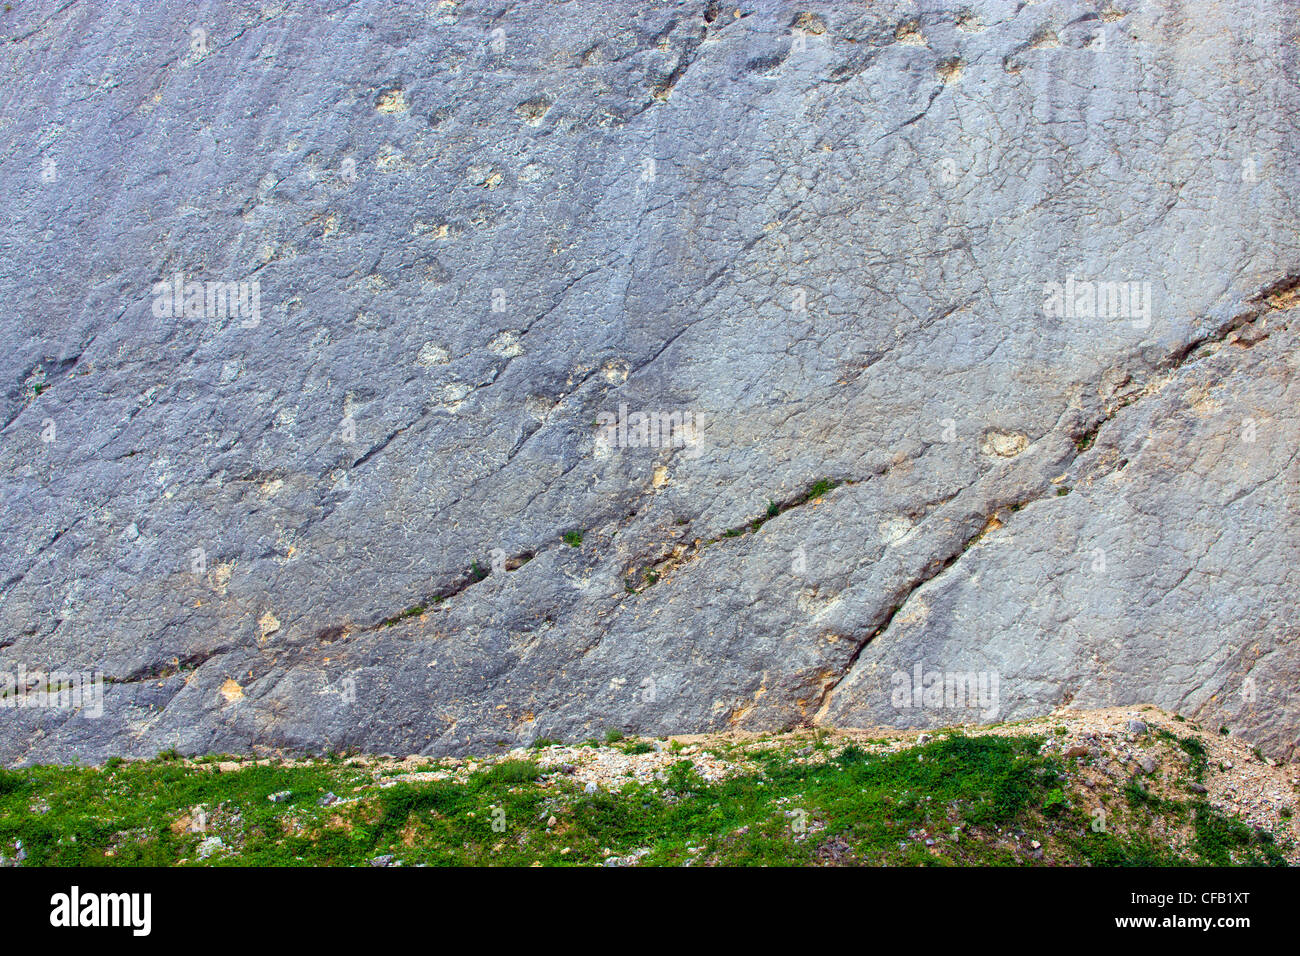 Lommiswil, saurian tracks, dinosaurs, Switzerland, canton Solothurn, stone quarry, rock, cliff, fossilization, fossils, - Stock Image